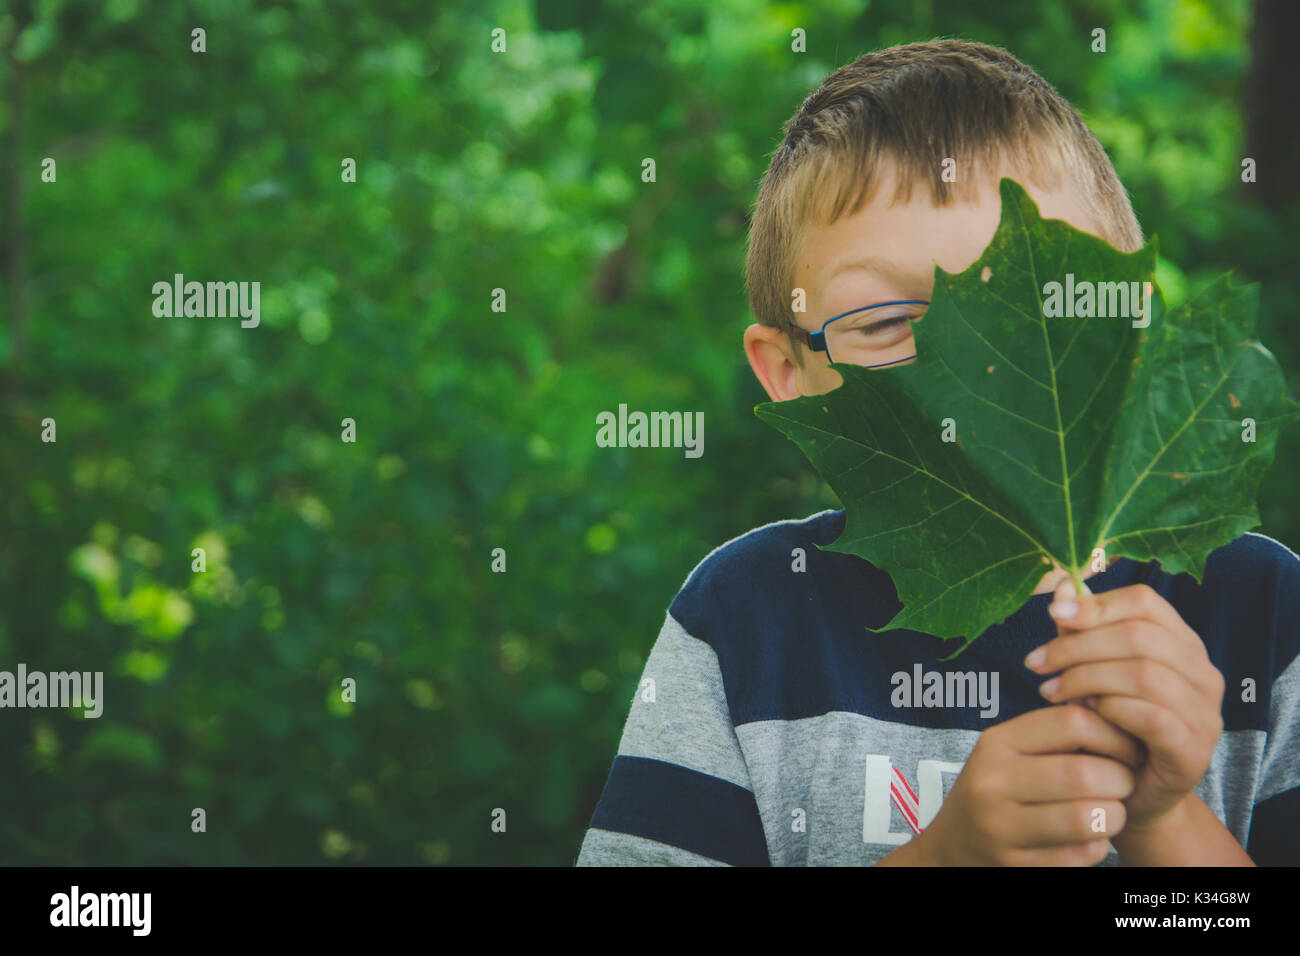 A young boy holds a green leaf in front of his face. - Stock Image